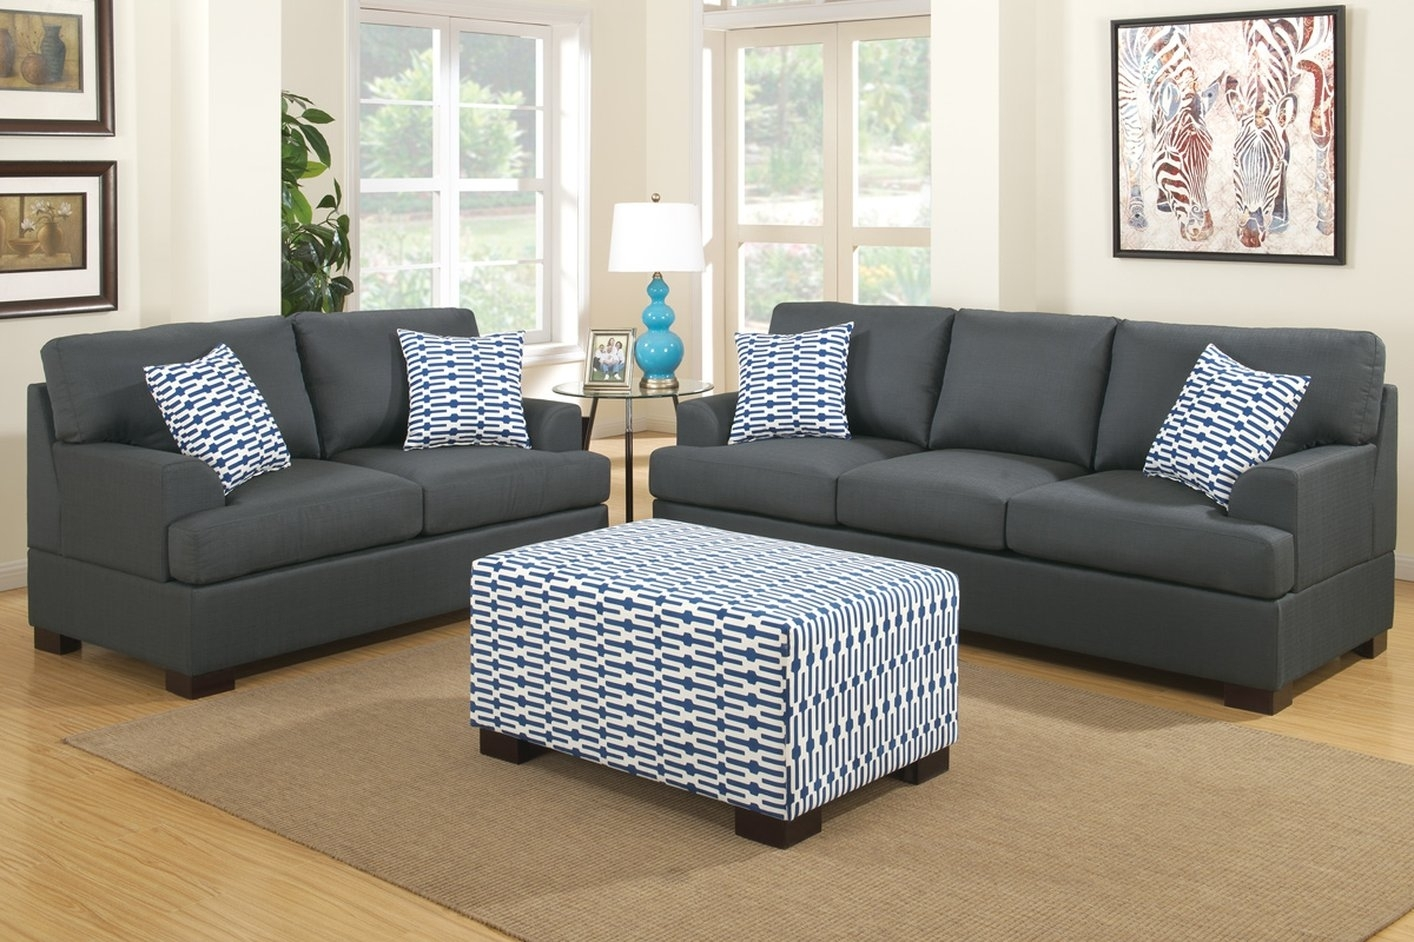 Sofa : Sleeper Sofa With Matching Reclining Loveseat White Loveseats inside Loveseats With Ottoman (Image 12 of 15)